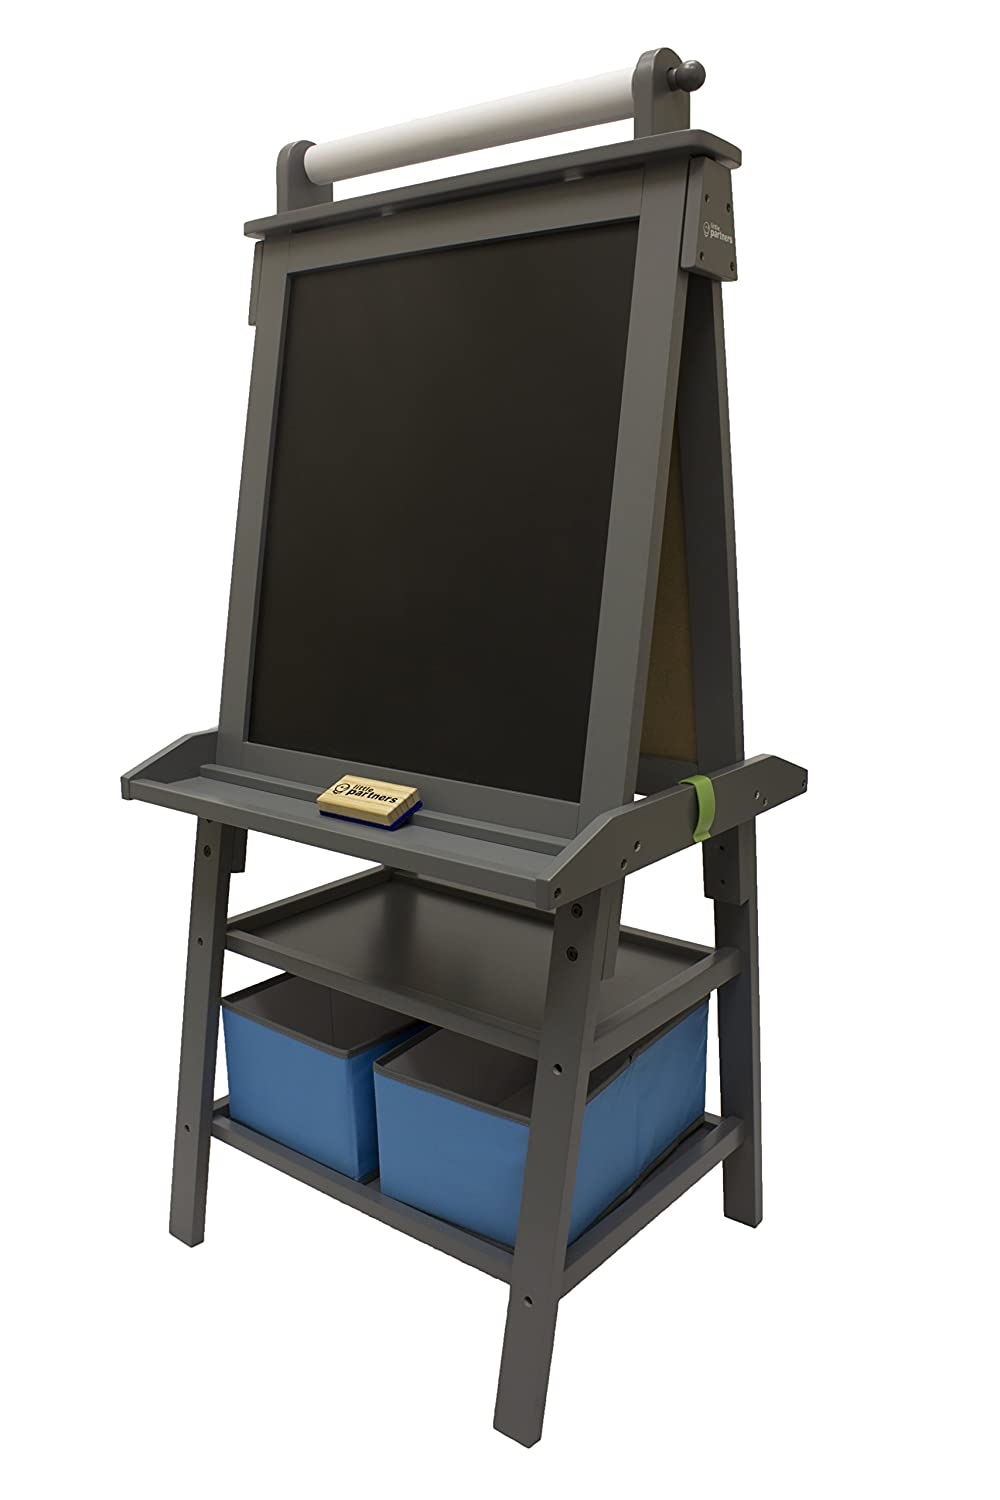 Storage Soft White Little Partners 2-Sided A-Frame Art Easel with Chalk Board Paper Feed and Accessories for Toddlers Magnetic Dry Erase